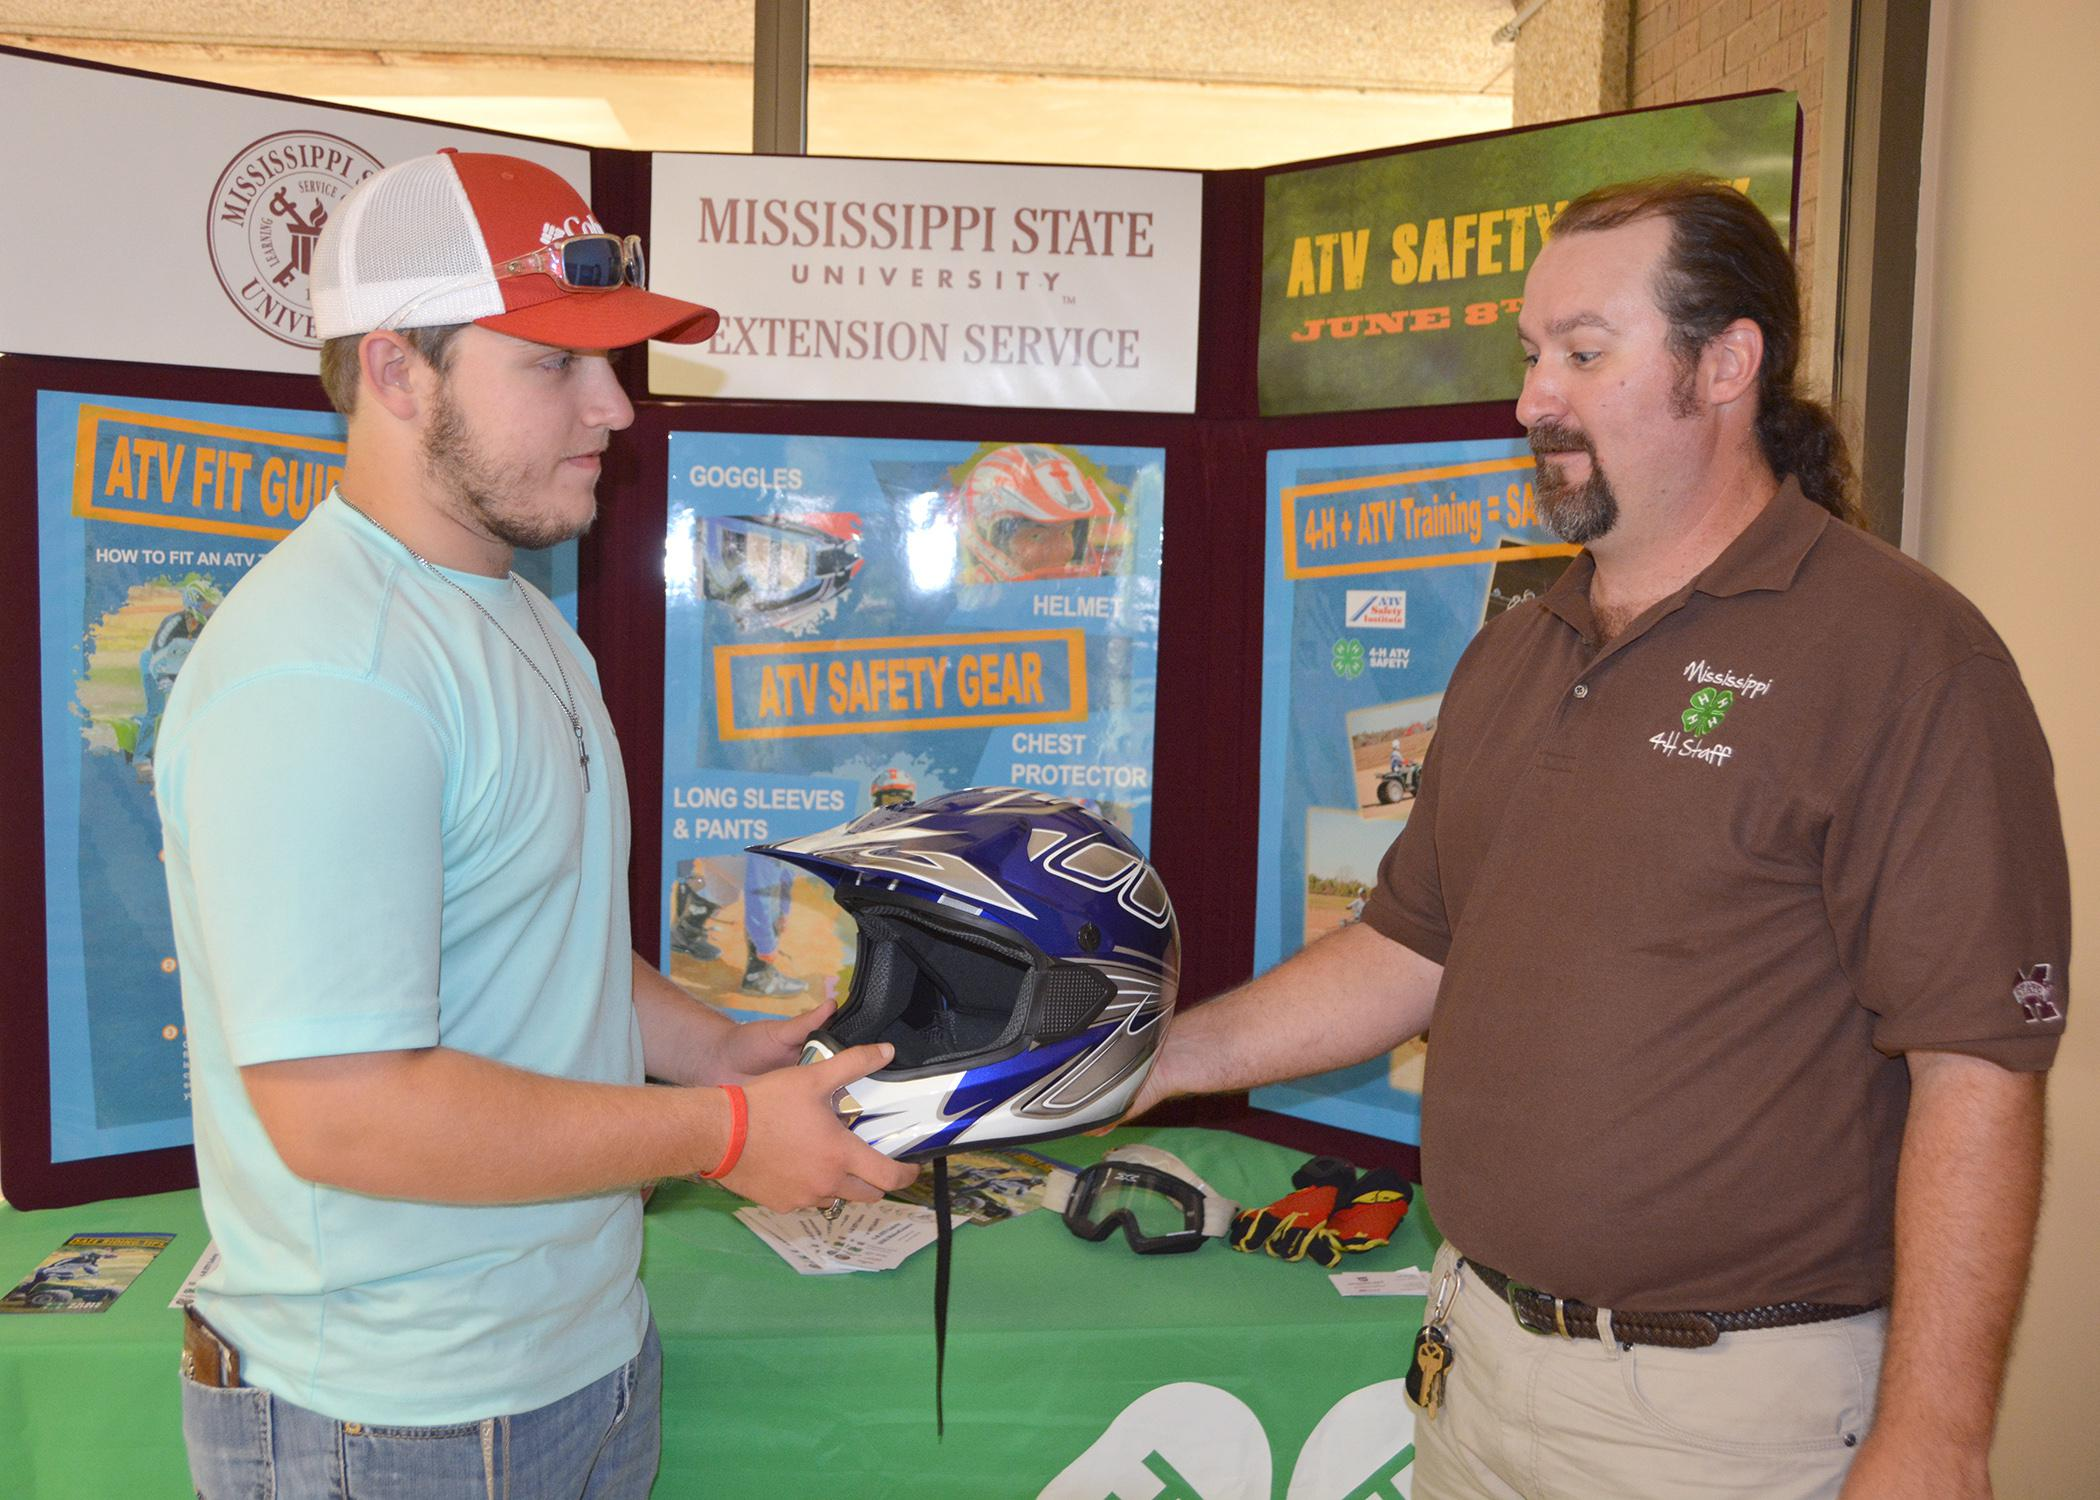 Parker Simpson of Choctaw County, left, talks with all-terrain vehicle safety instructor Brad Staton about the proper gear to wear while riding an ATV, including a helmet, eye protection and gloves. (Photo by MSU Ag Communications/Keri Collins Lewis)